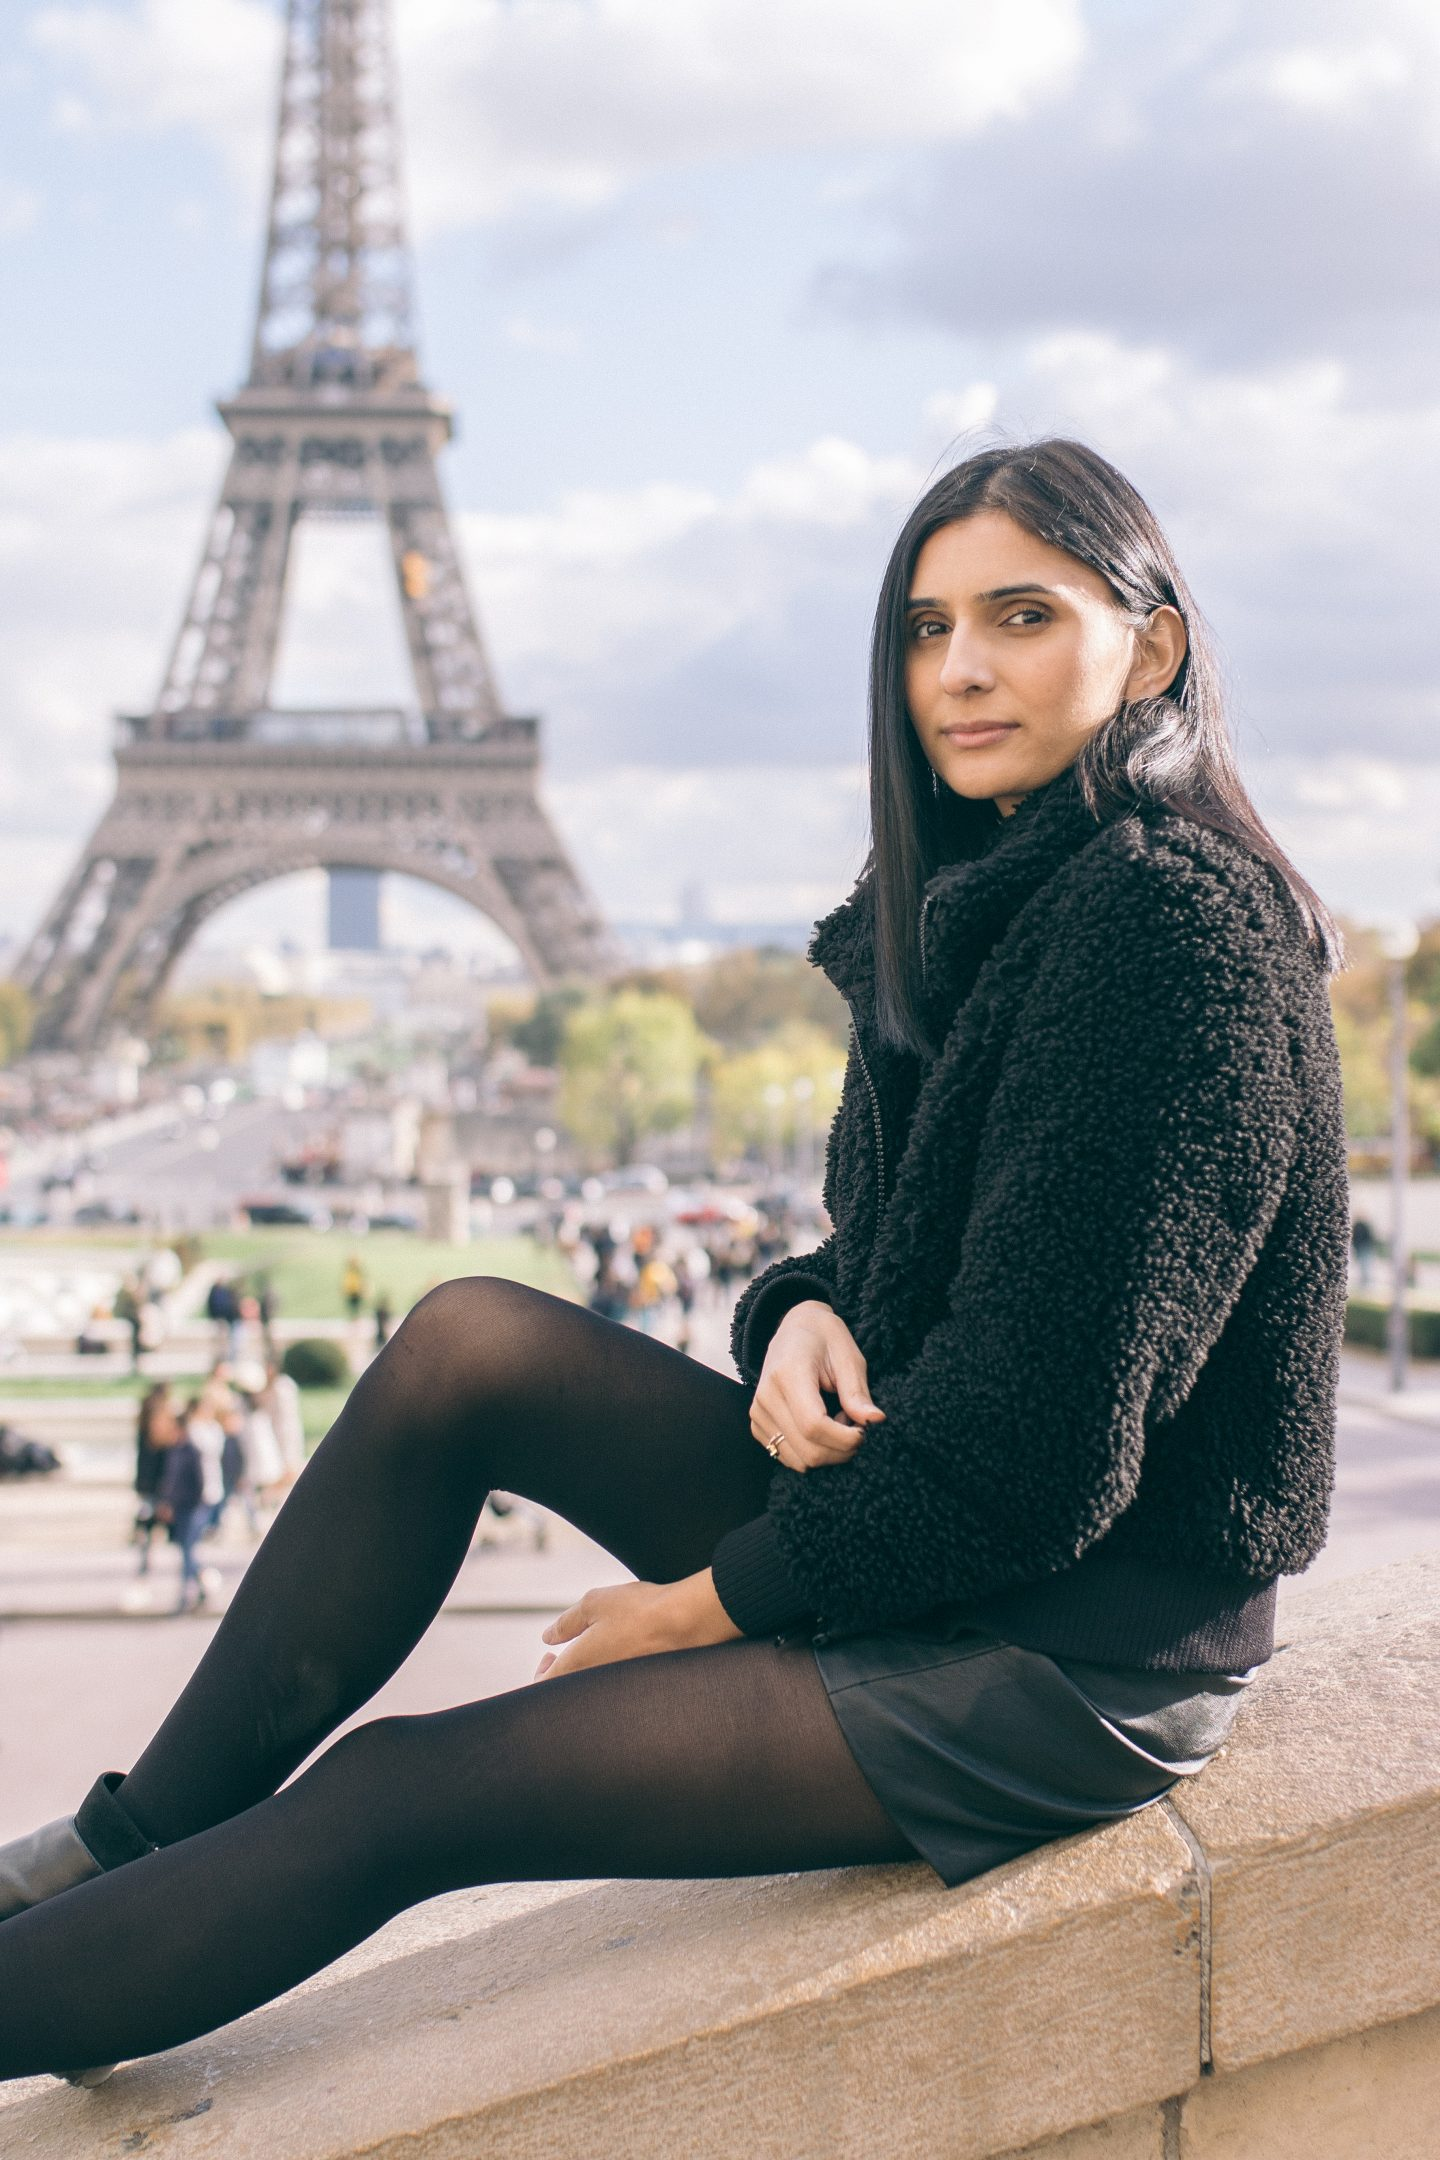 Travel Log: Is Paris Overrated?